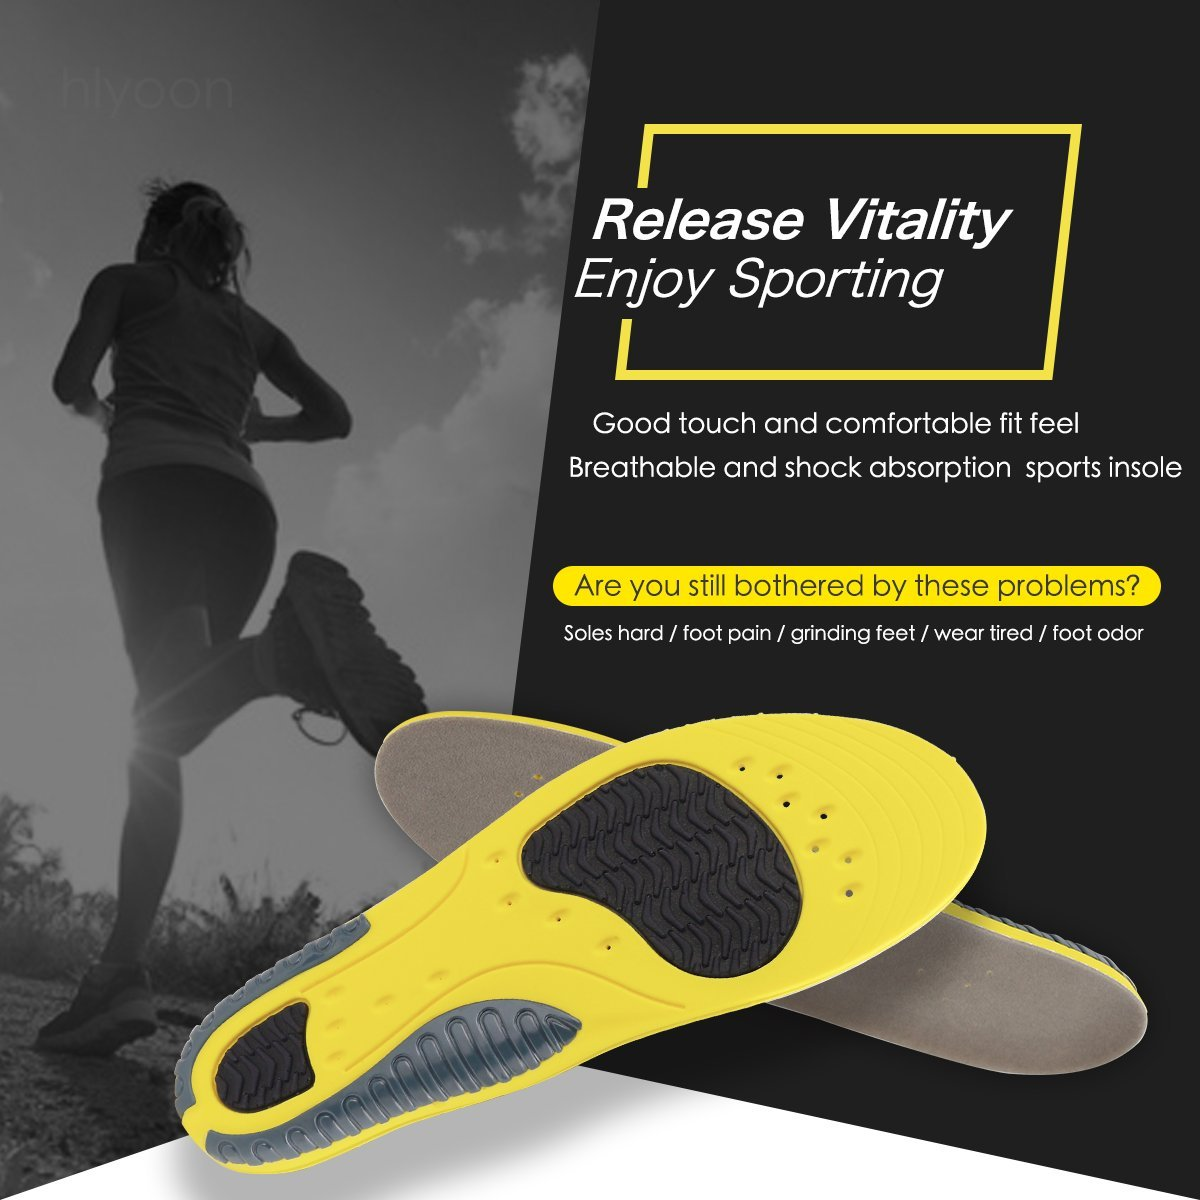 HLYOON Sport Trainer Athletic Cushioning Arch Support Shoe Insoles Excellent Shock Absorption for Arch Support,Gray flocking cloth and PU+TPU, High elasticity and Quick-drying (UK Woman\'s (3-8))